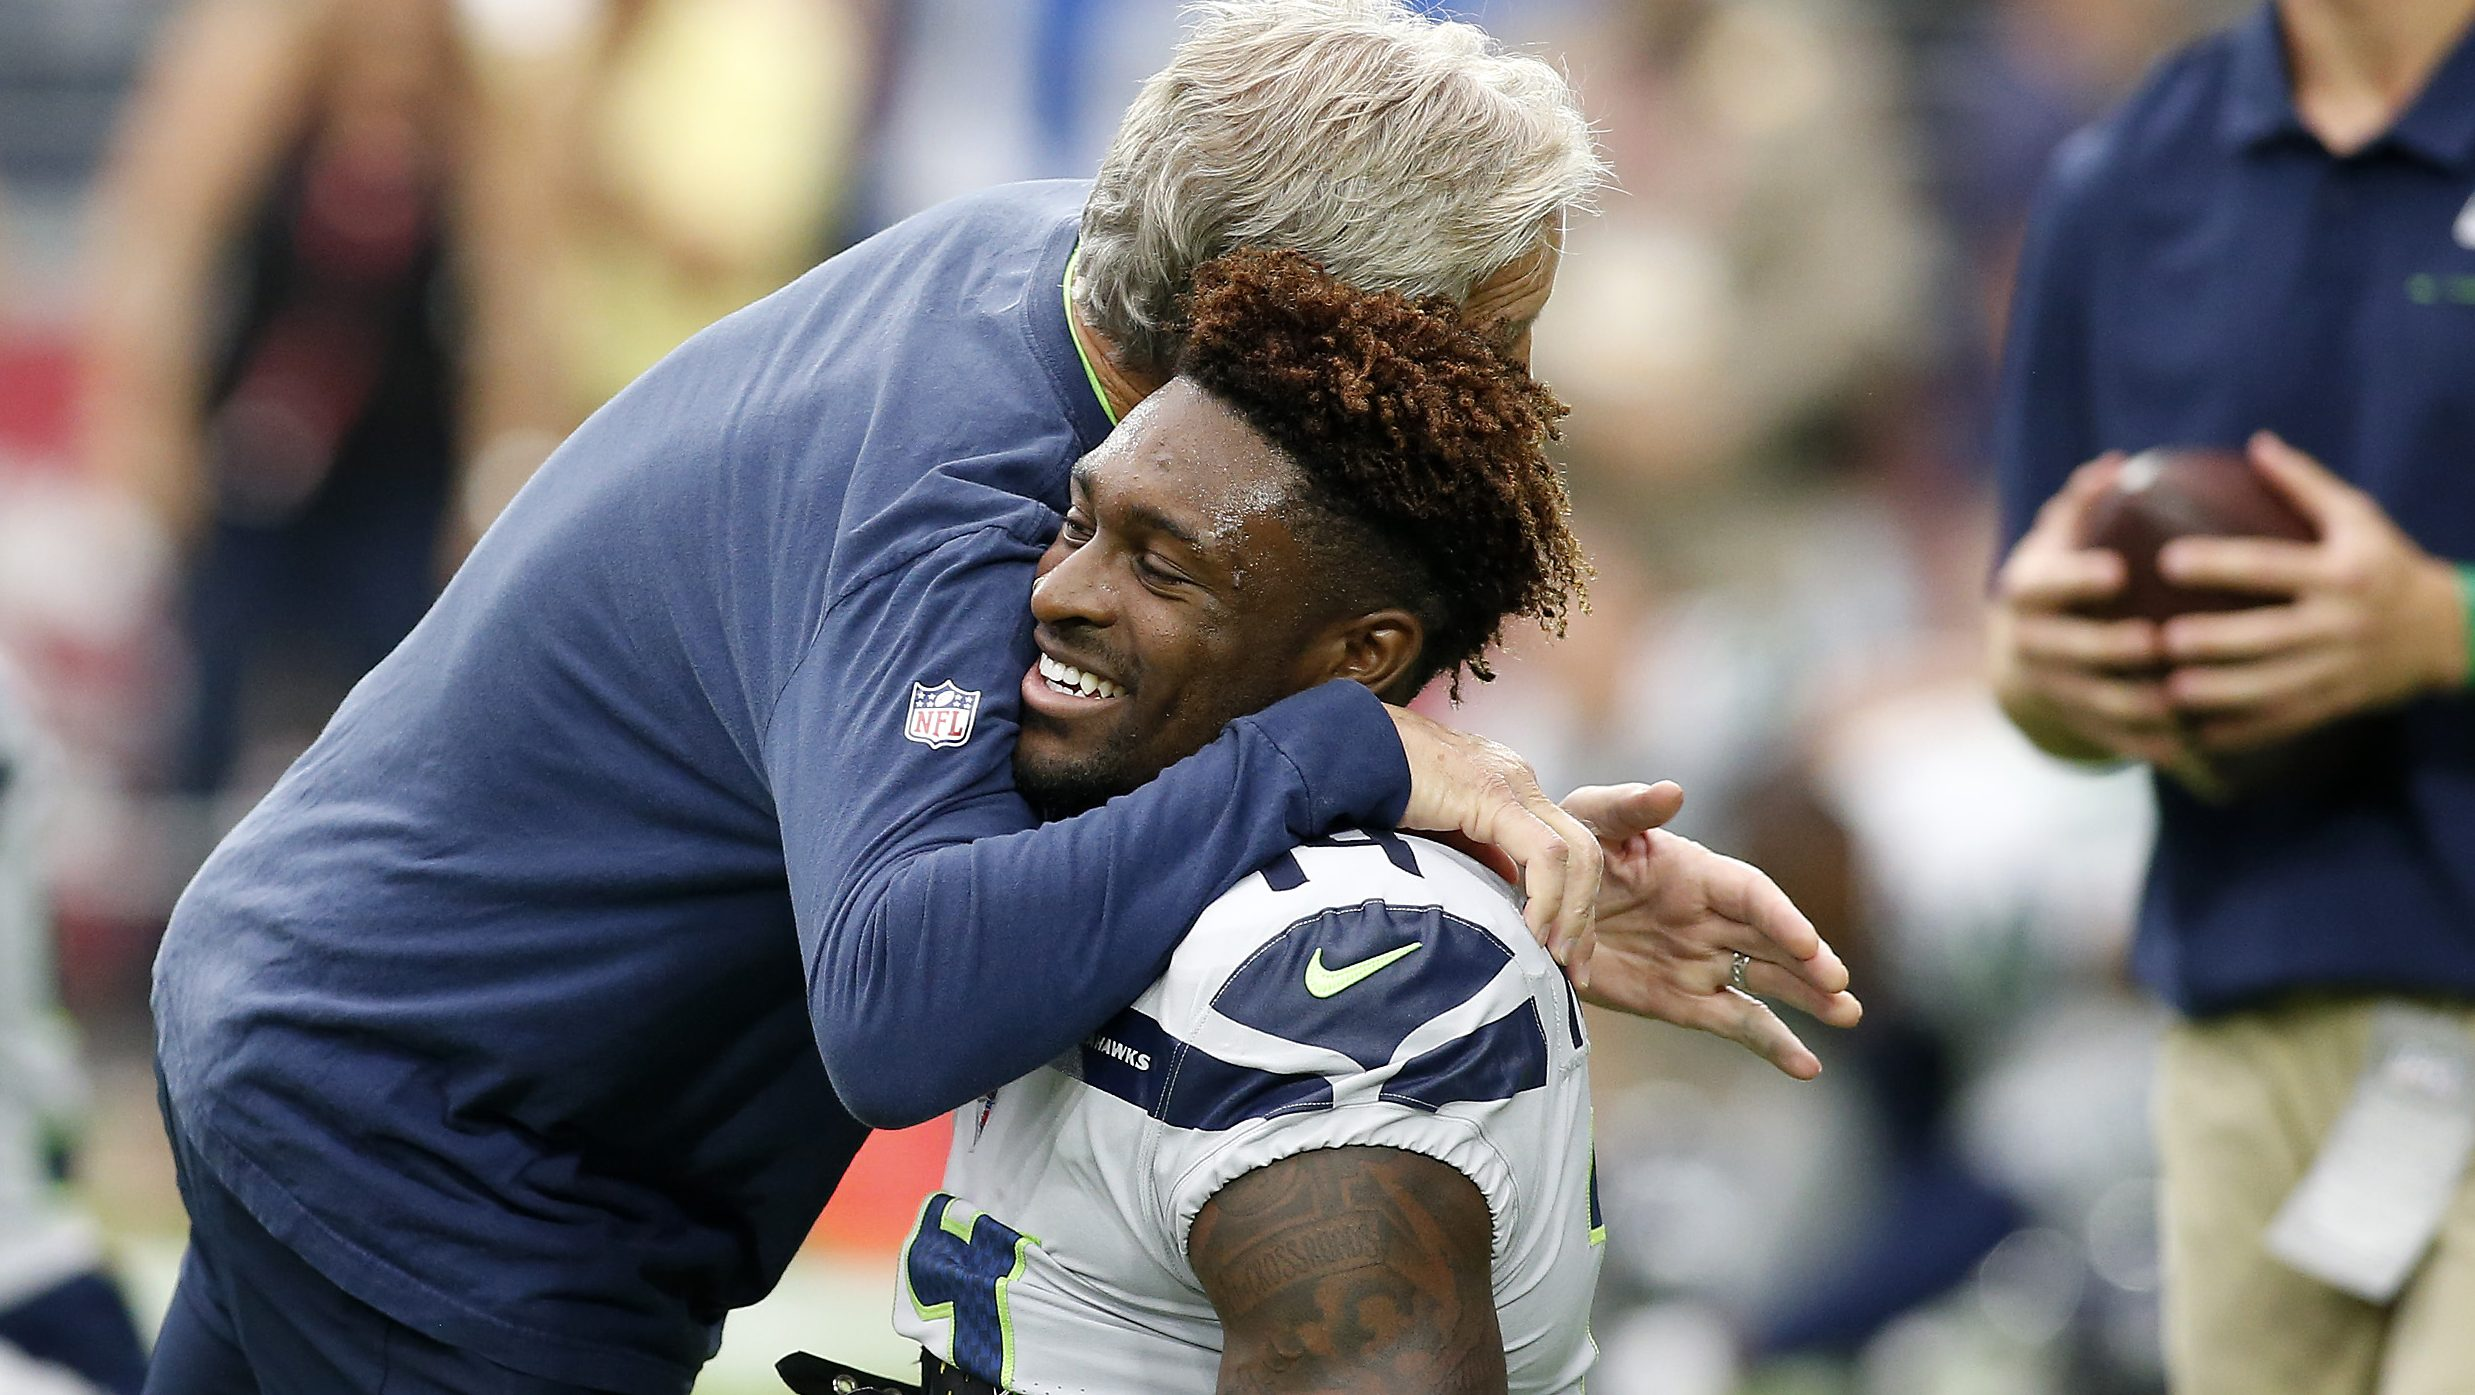 Pete Carroll Gives DK Metcalf an Amazing Nickname With Hilarious Meme